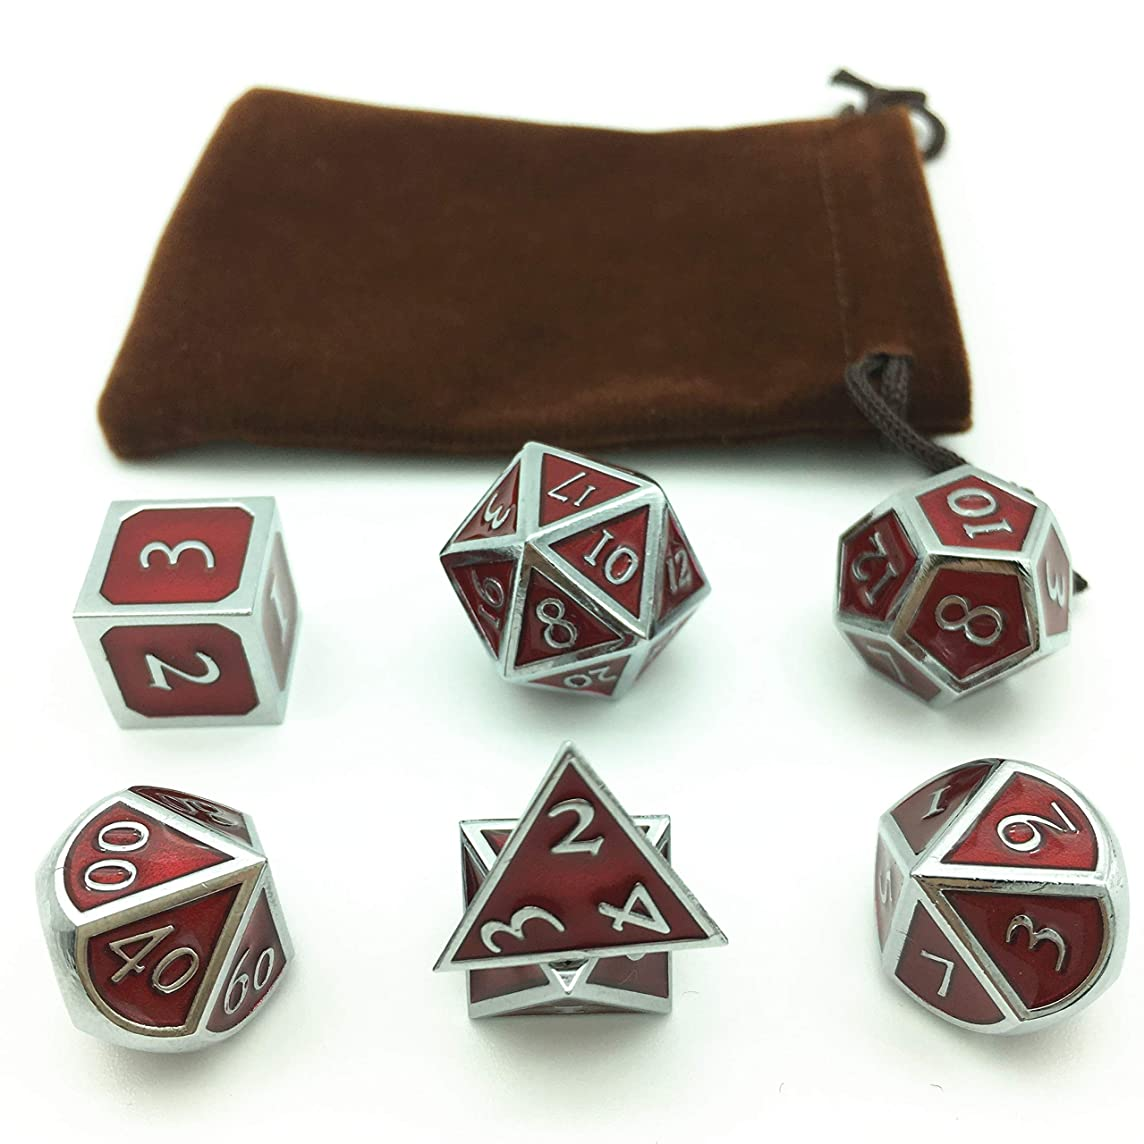 Momostar Solid Polyhedron Dice, Metallic Tweezers for DND RPG,Chrome Color & Blood-red Background.